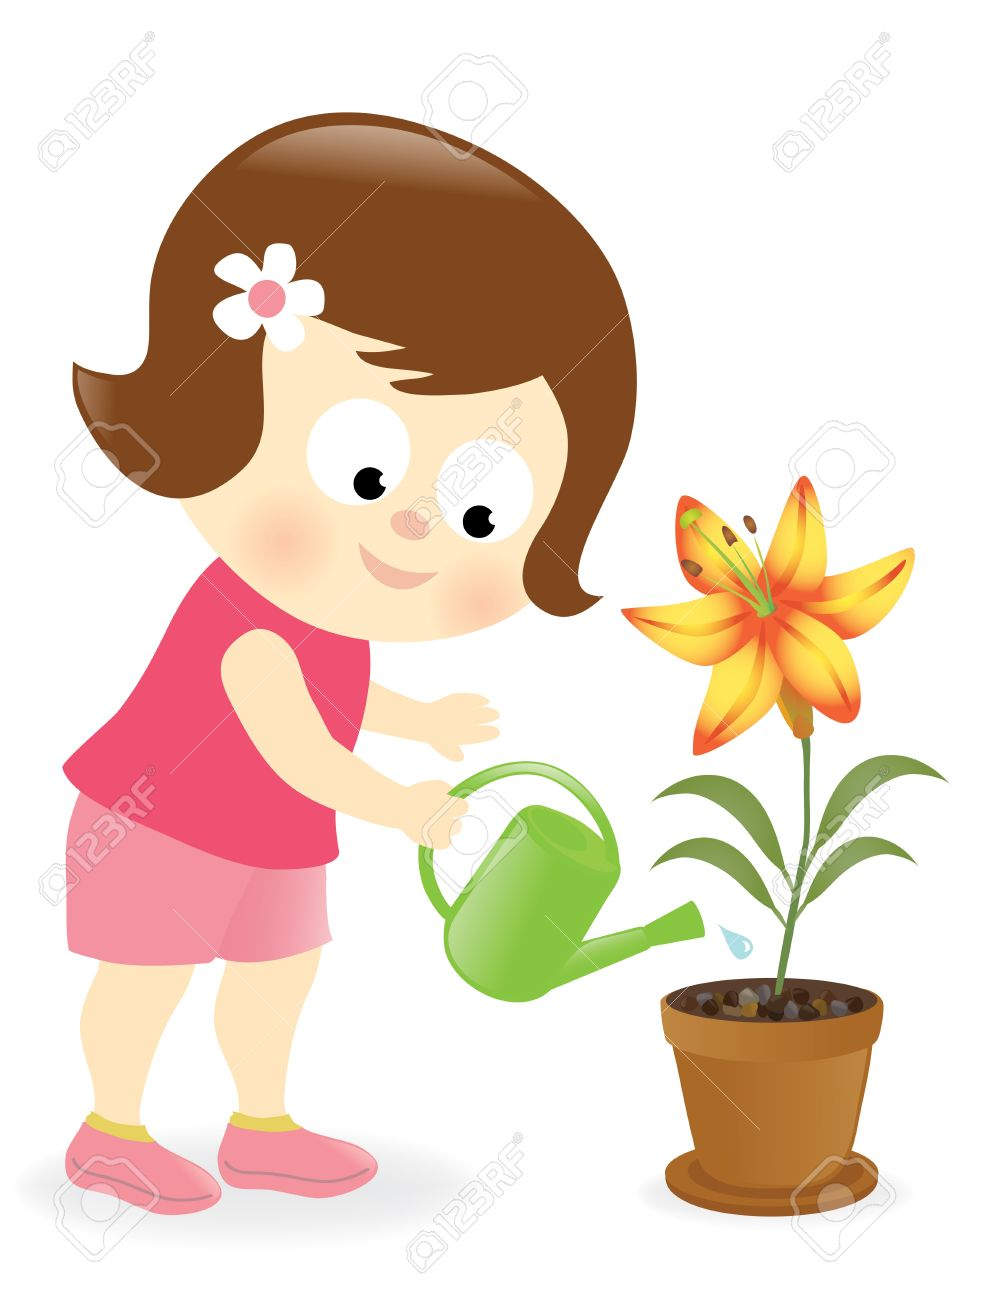 Girl watering plants clipart 5 » Clipart Station.